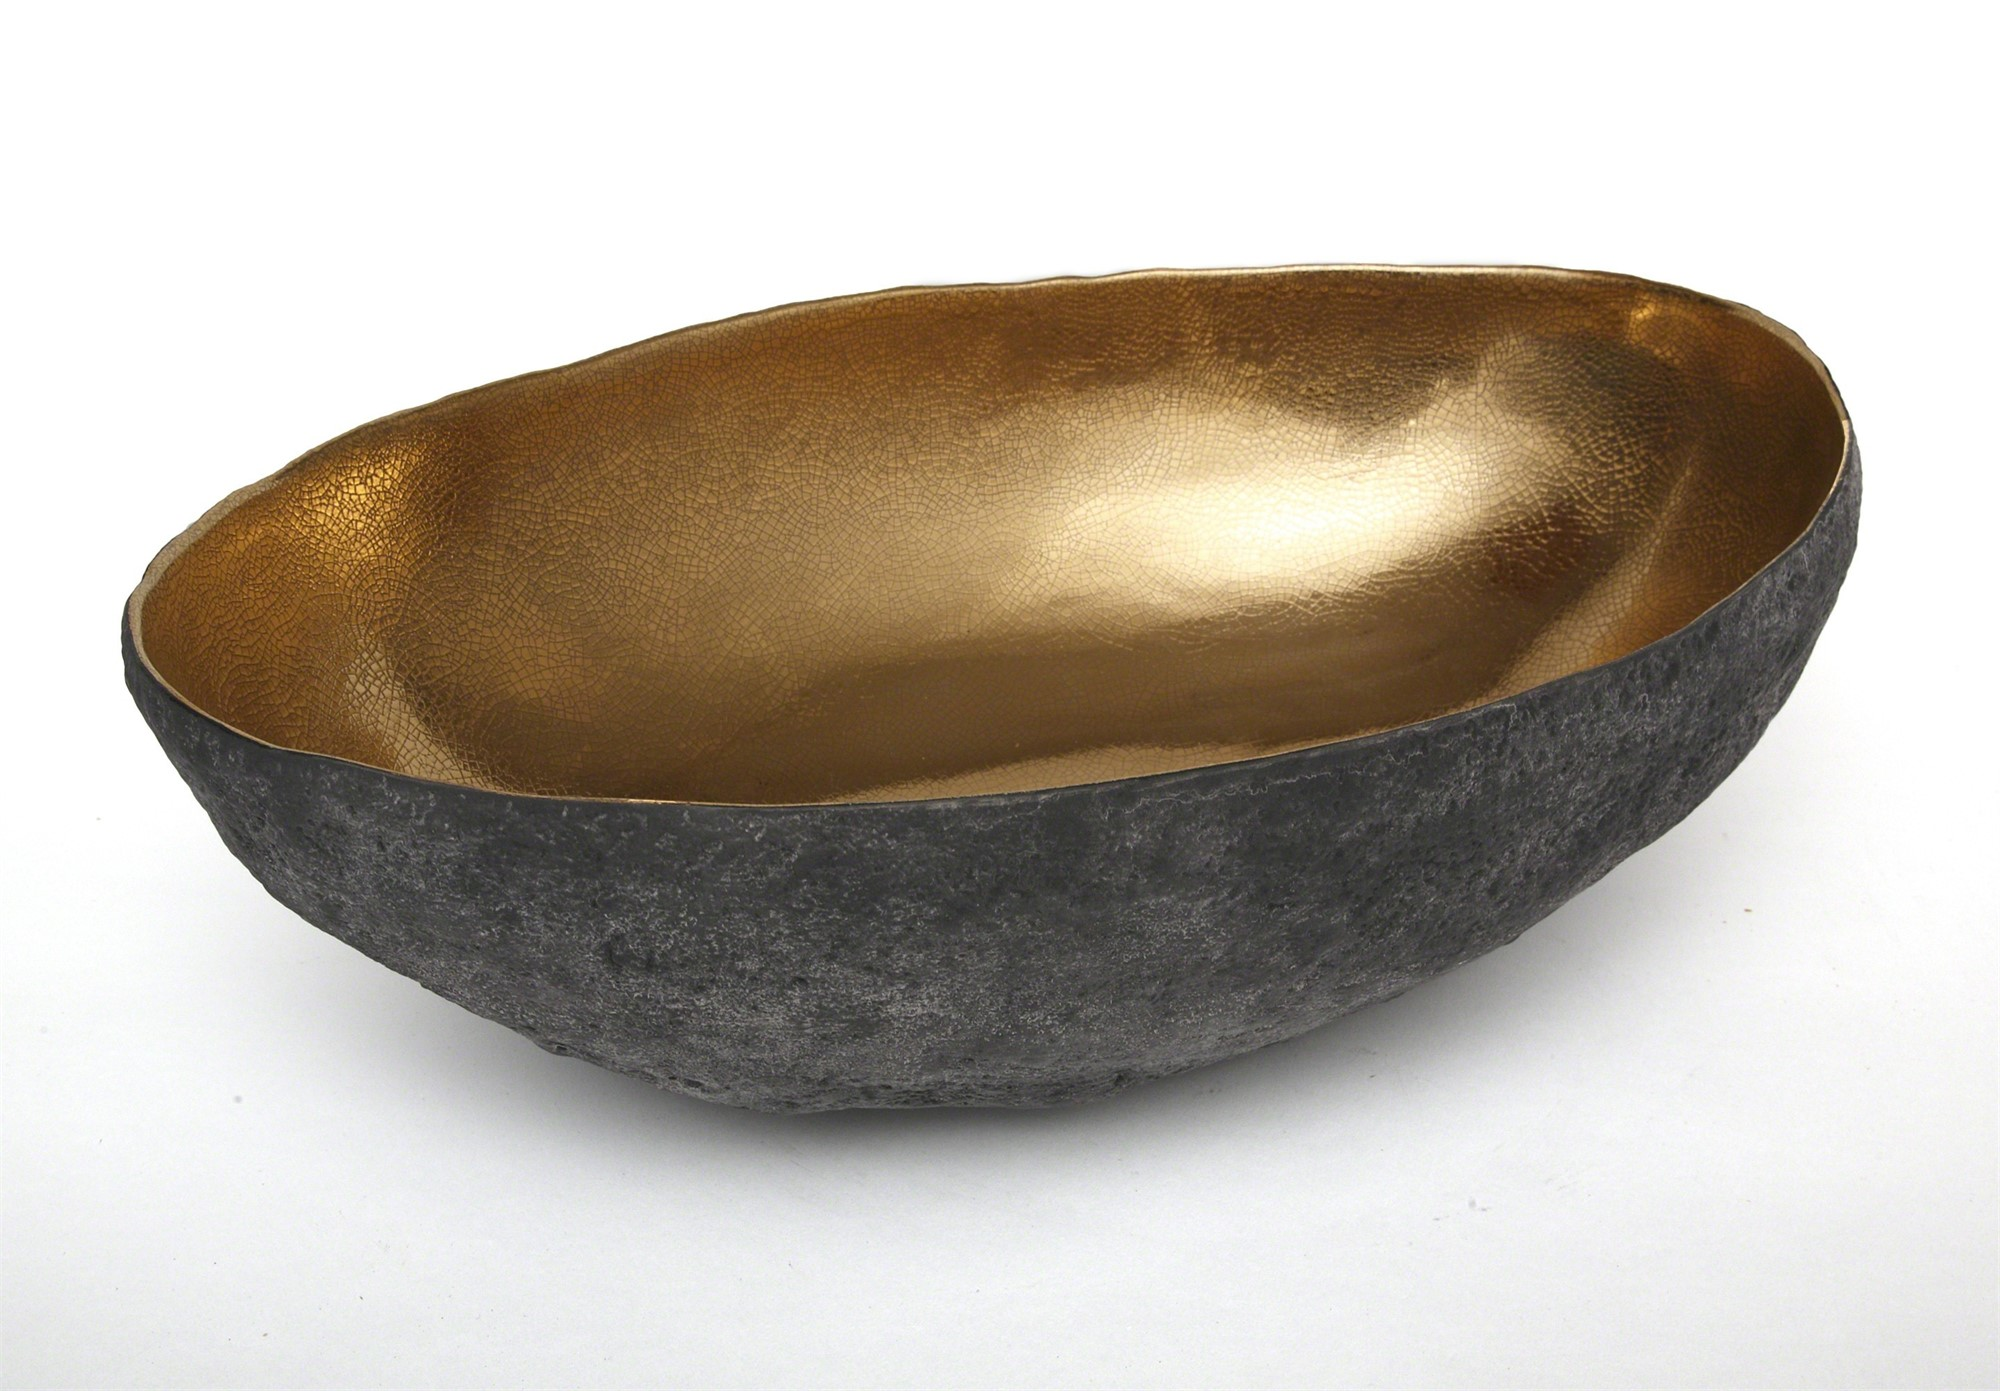 Oval vessel by Cristina Salusti